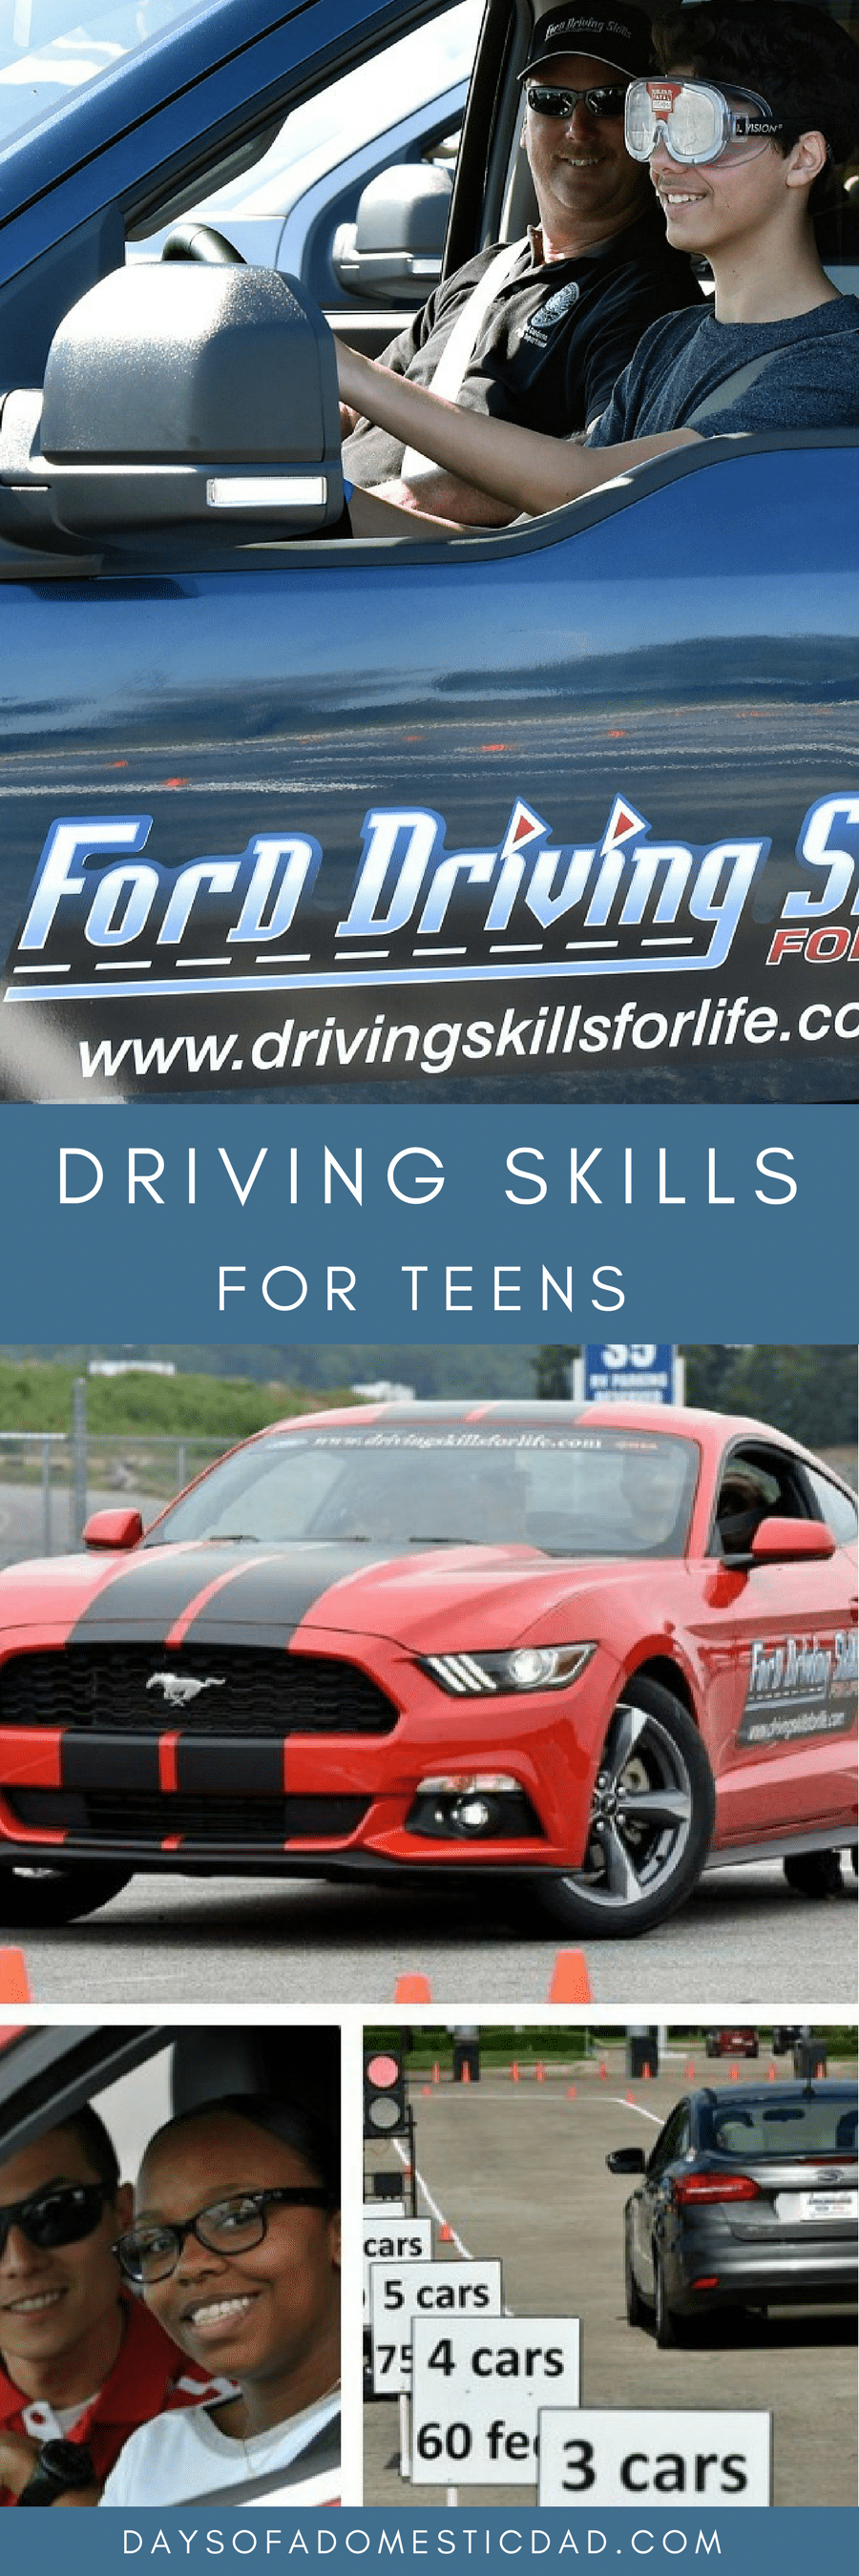 Driving Skills for Teens - Ford Driving Skills for Life is coming to your area.